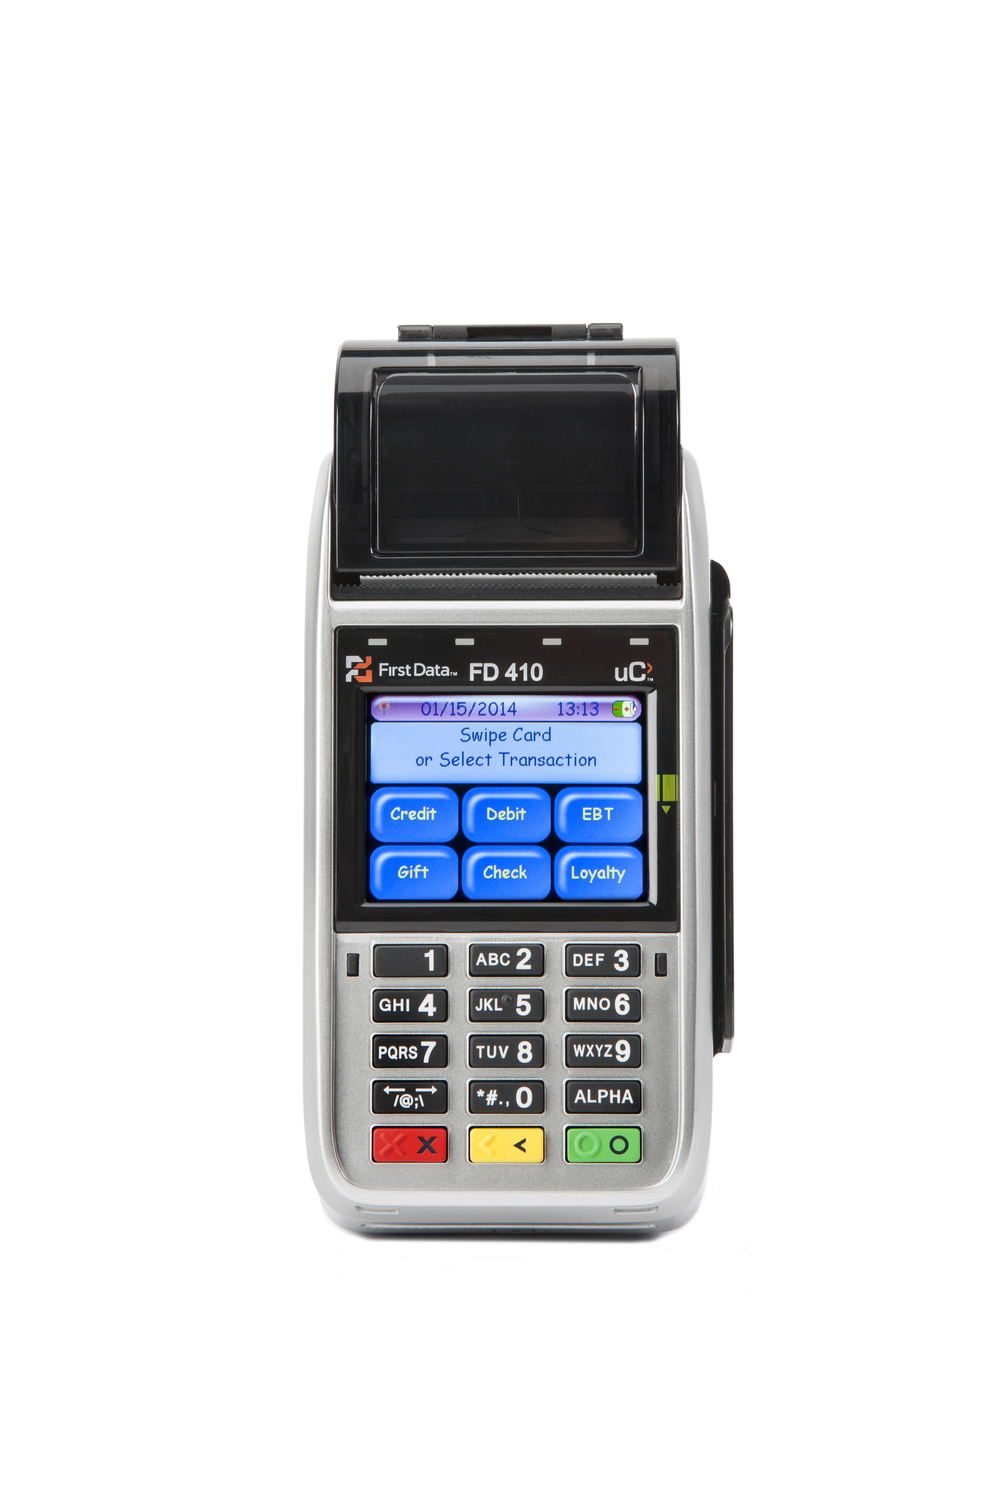 "The First Data® FD410 wireless terminal is a hand-held point-of-sale device that you can use remotely to provide a full range of payment options. You'll have access to wireless downloads wherever your business takes you. This terminal enables you to receive the full range of solutions for payment processing, including credit, debit, gift cards, personal paper checks and EBT, all from a single provider. Plus, with the ""store-and-forward"" capability, you can ensure card-present rates when there is no signal at the time of the transaction. The FD410 terminal is light and ergonomically shaped for true mobility and flexibility. It uses 3G technology to connect wirelessly over AT&T's GPRS network, which means you'll get the fastest data transmissions and more coverage area for your business. The FD410 terminal also prepares you for acceptance of EMV (also known as chip-and-PIN) transactions."